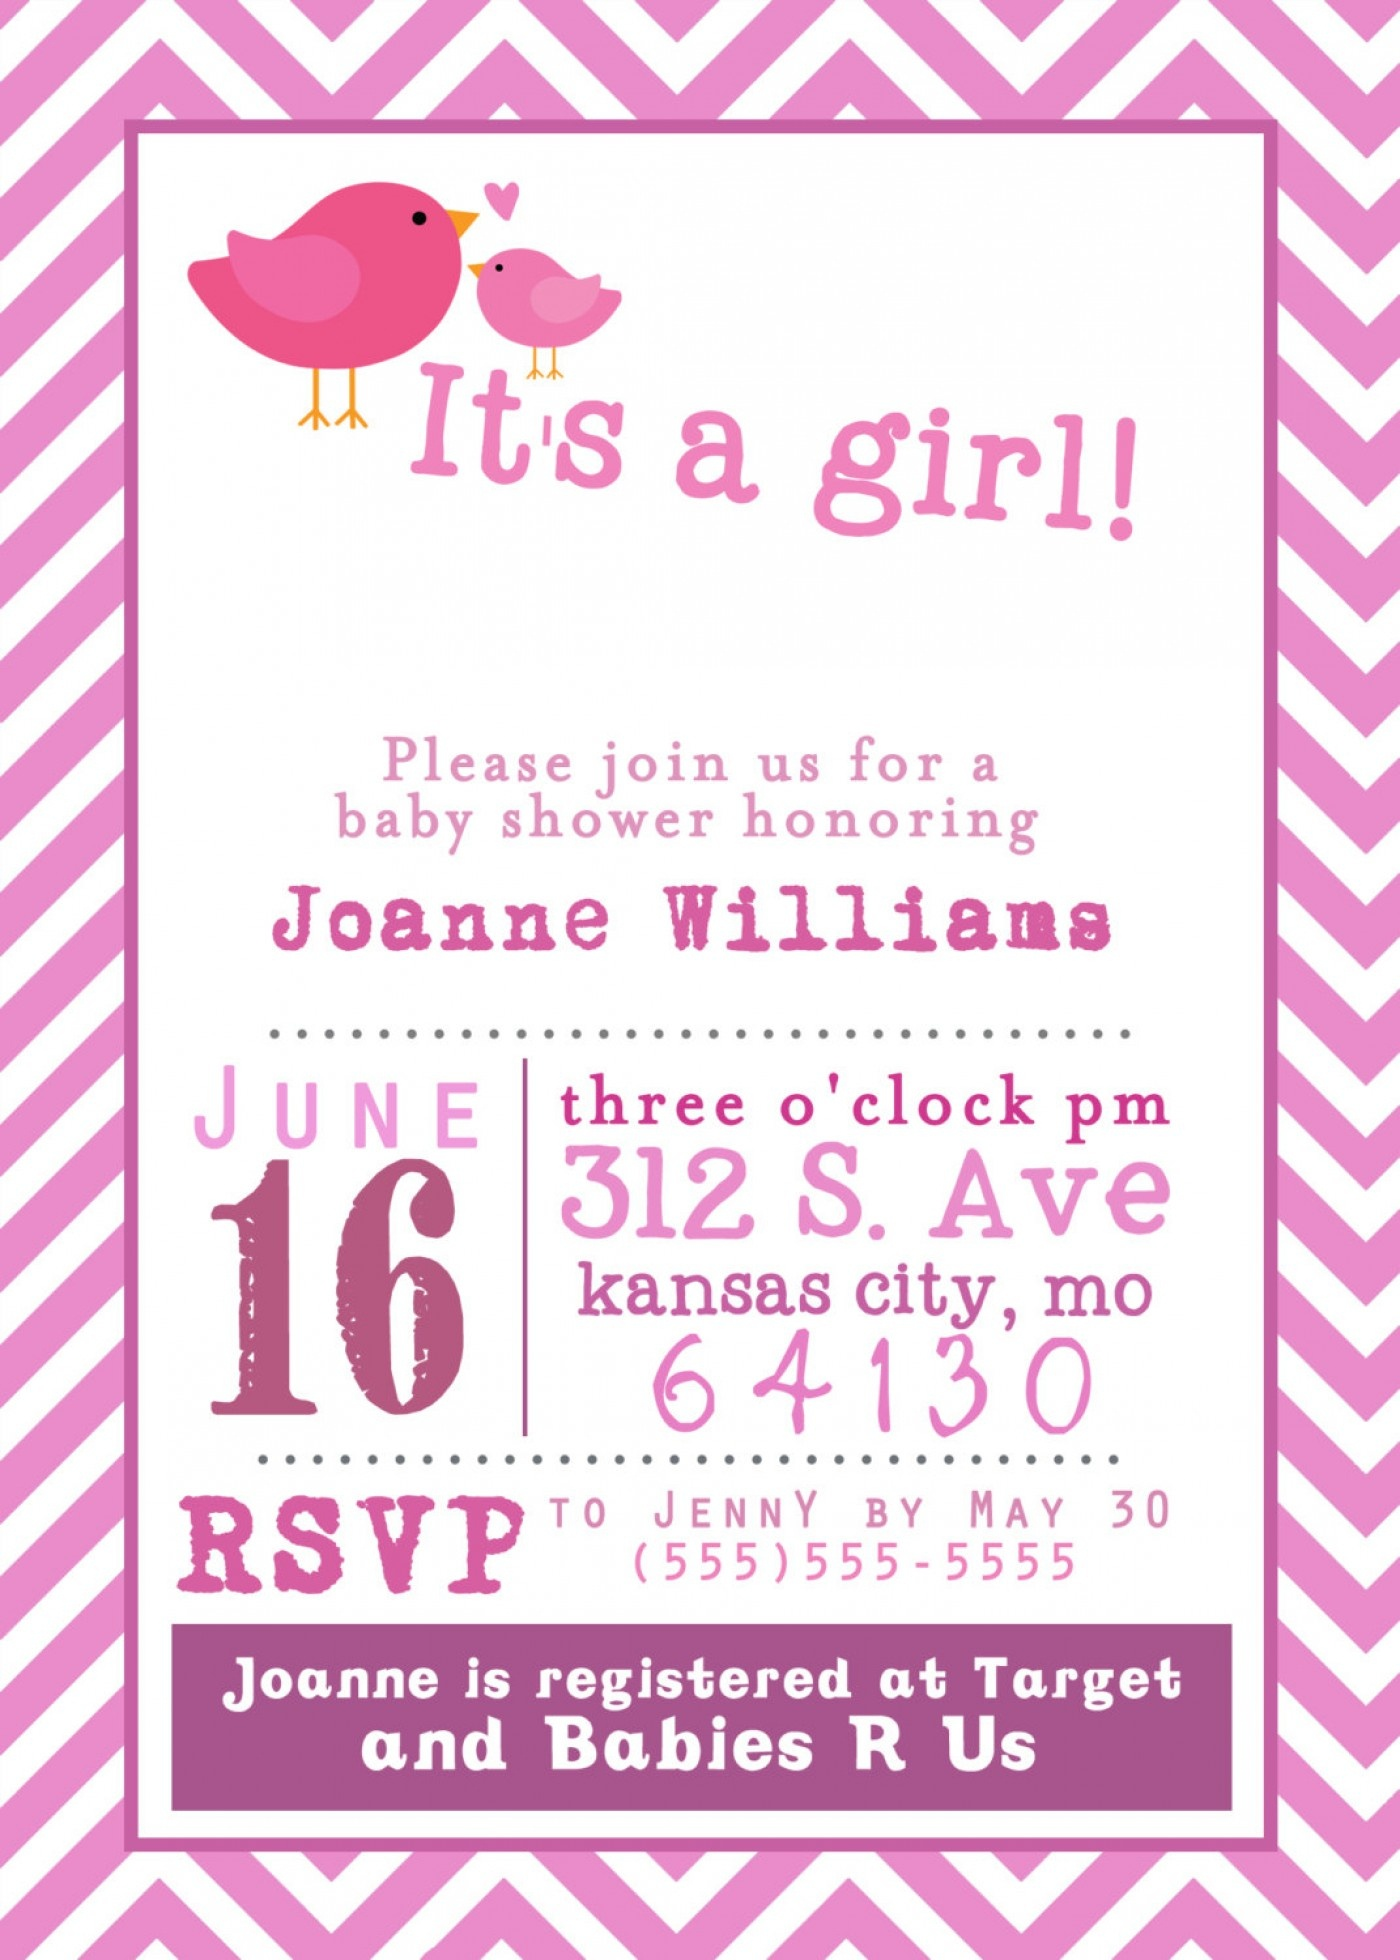 010 Free Printable Baby Shower Invitations For The Design Of Your - Free Printable Baby Shower Invitations Templates